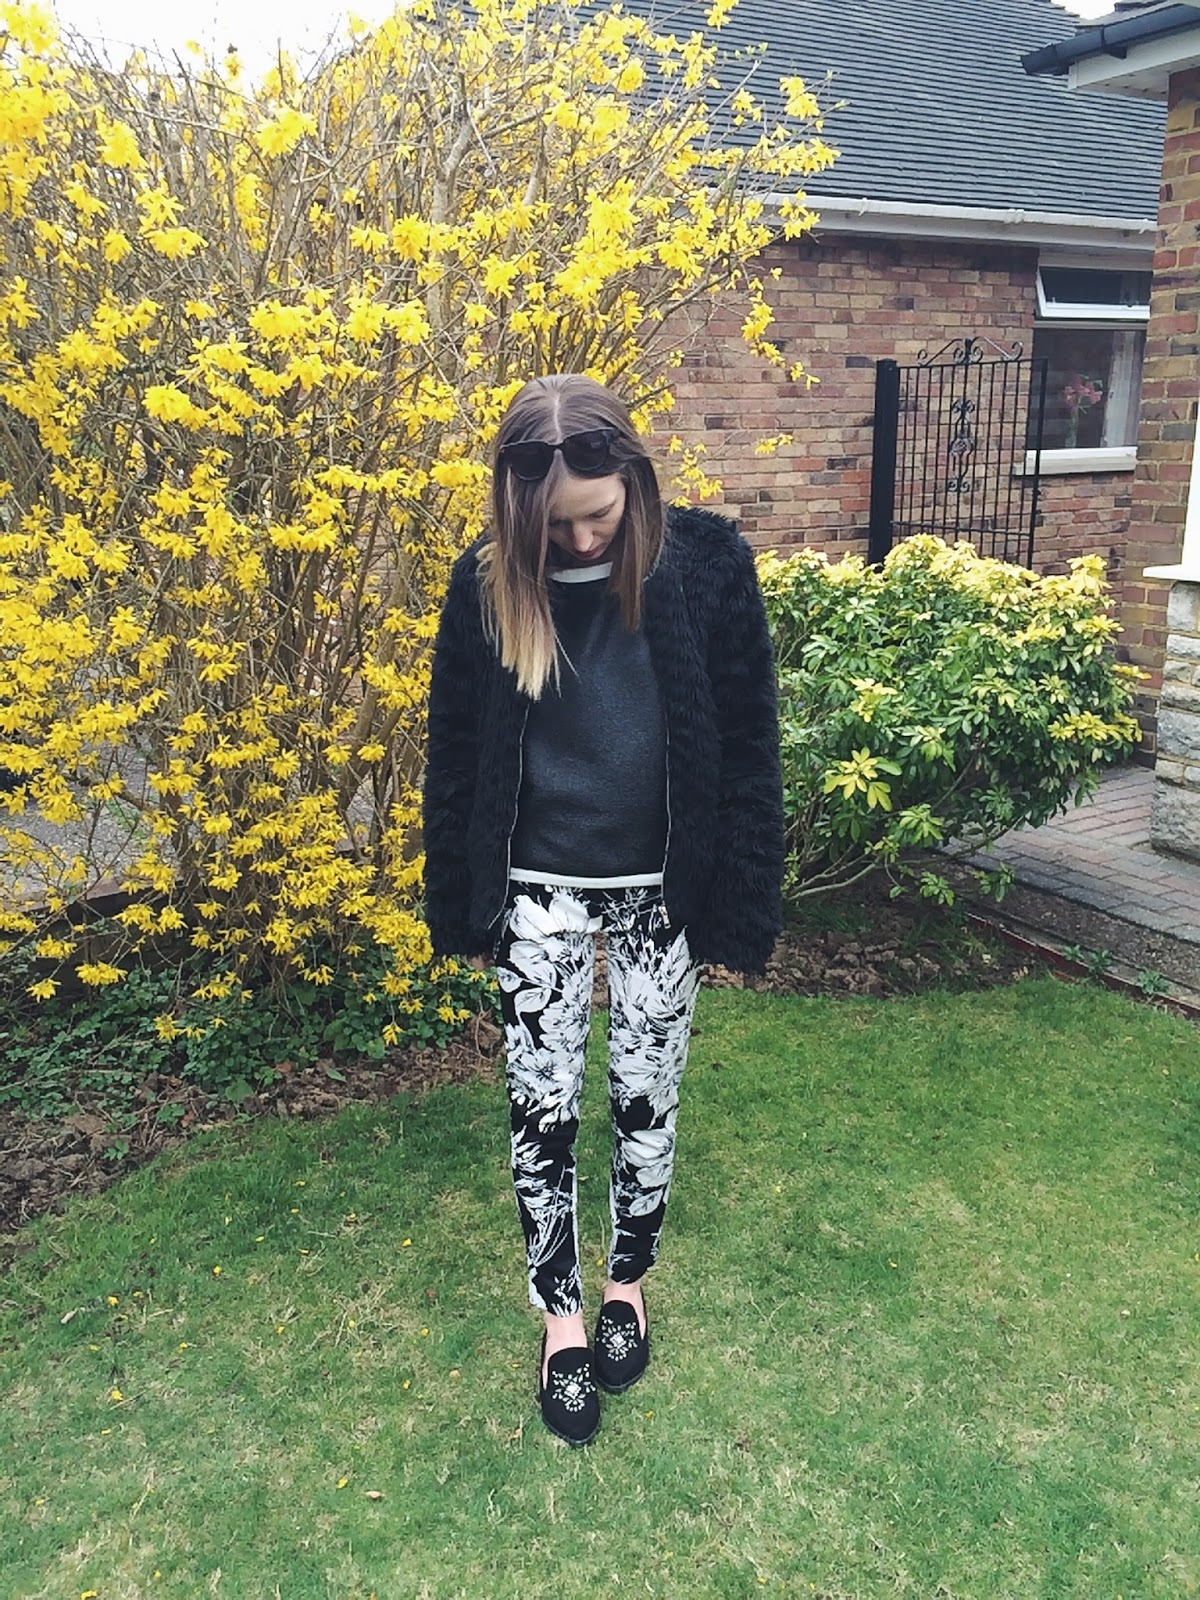 Primark Floral Print Cigarette Trousers, Next Embellished Loafers, M&S Limited Leather Jumper, Dorothy Perkins Faux Fur Coat